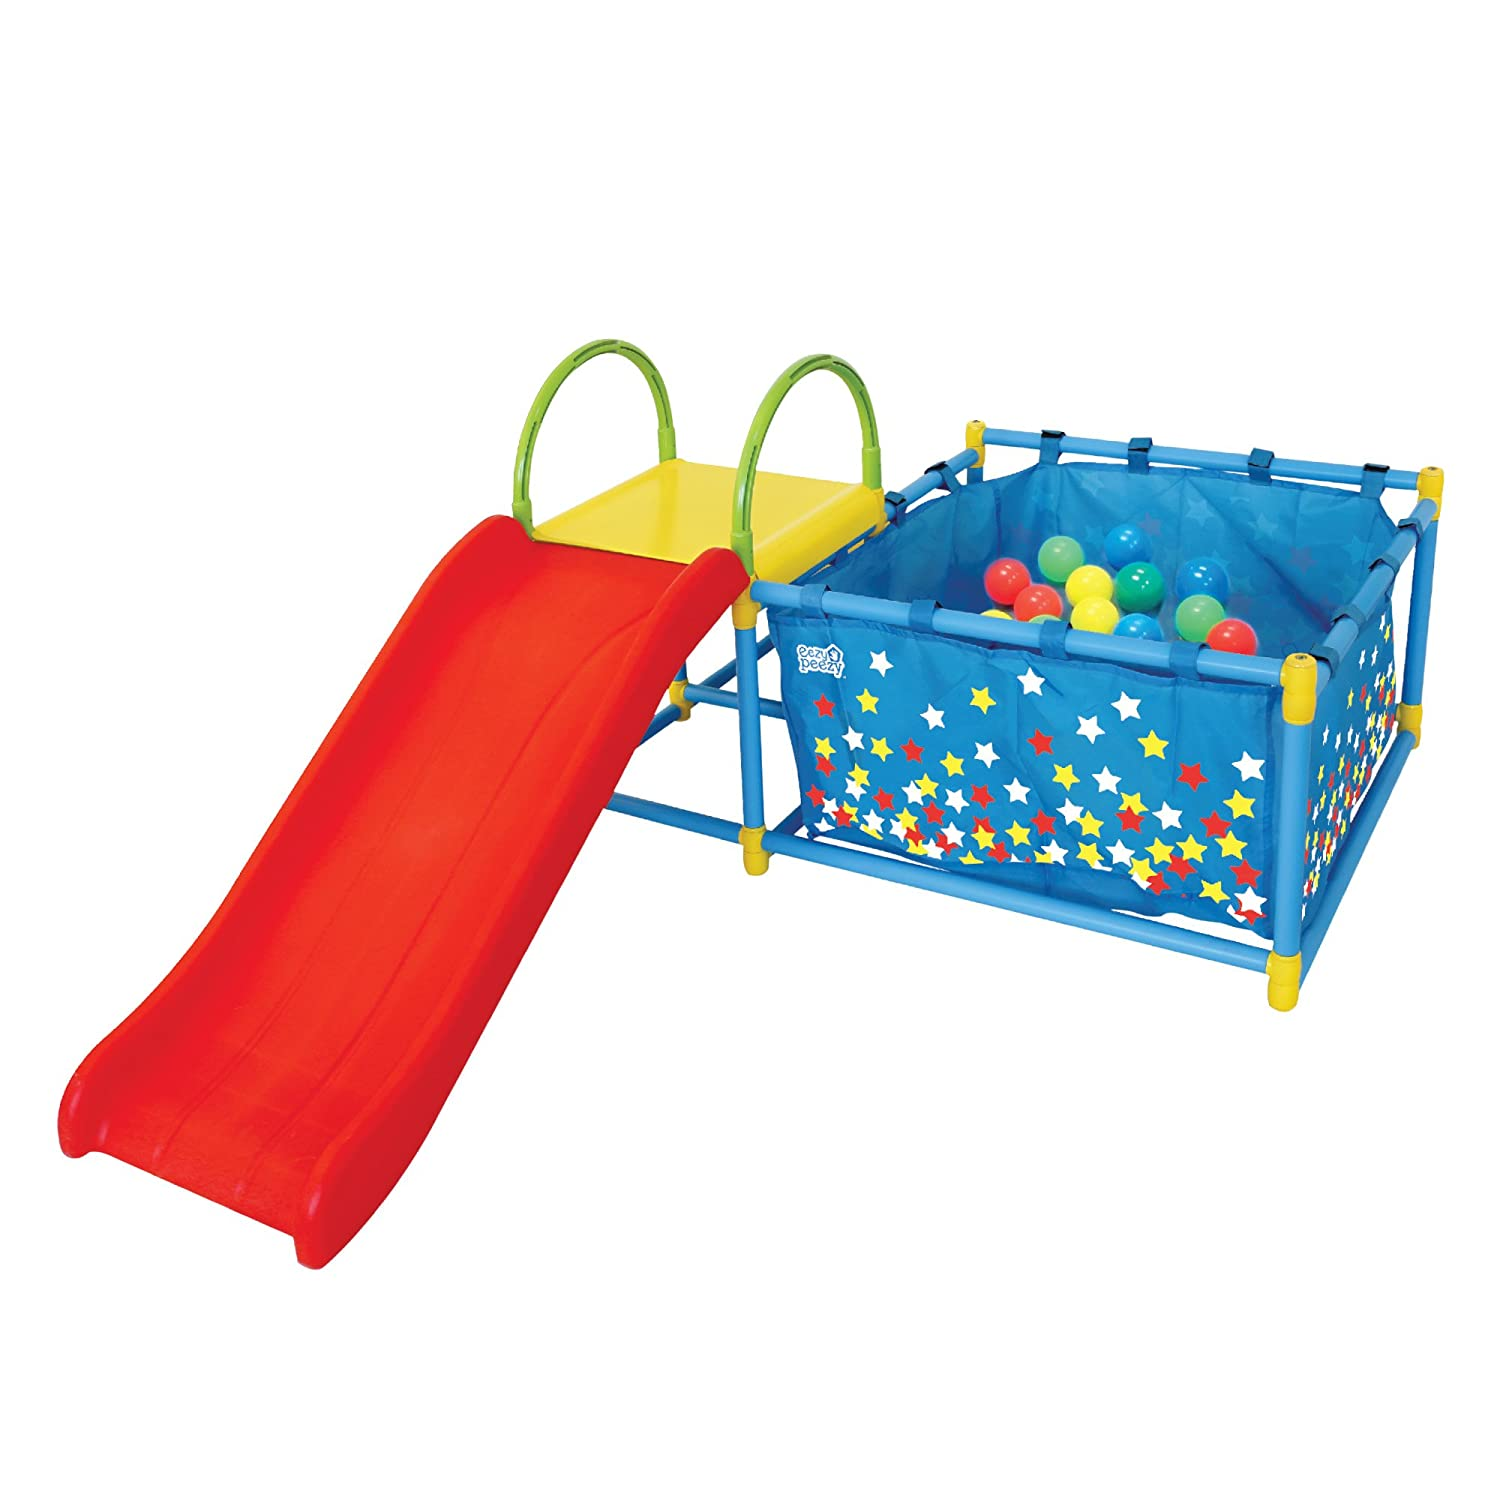 Eezy Peezy Active Play 3 in 1 Jungle Gym Foldable PlaySet – Includes Slide, Ball Pit, & Toss Target with 50 Colorful Balls TM350